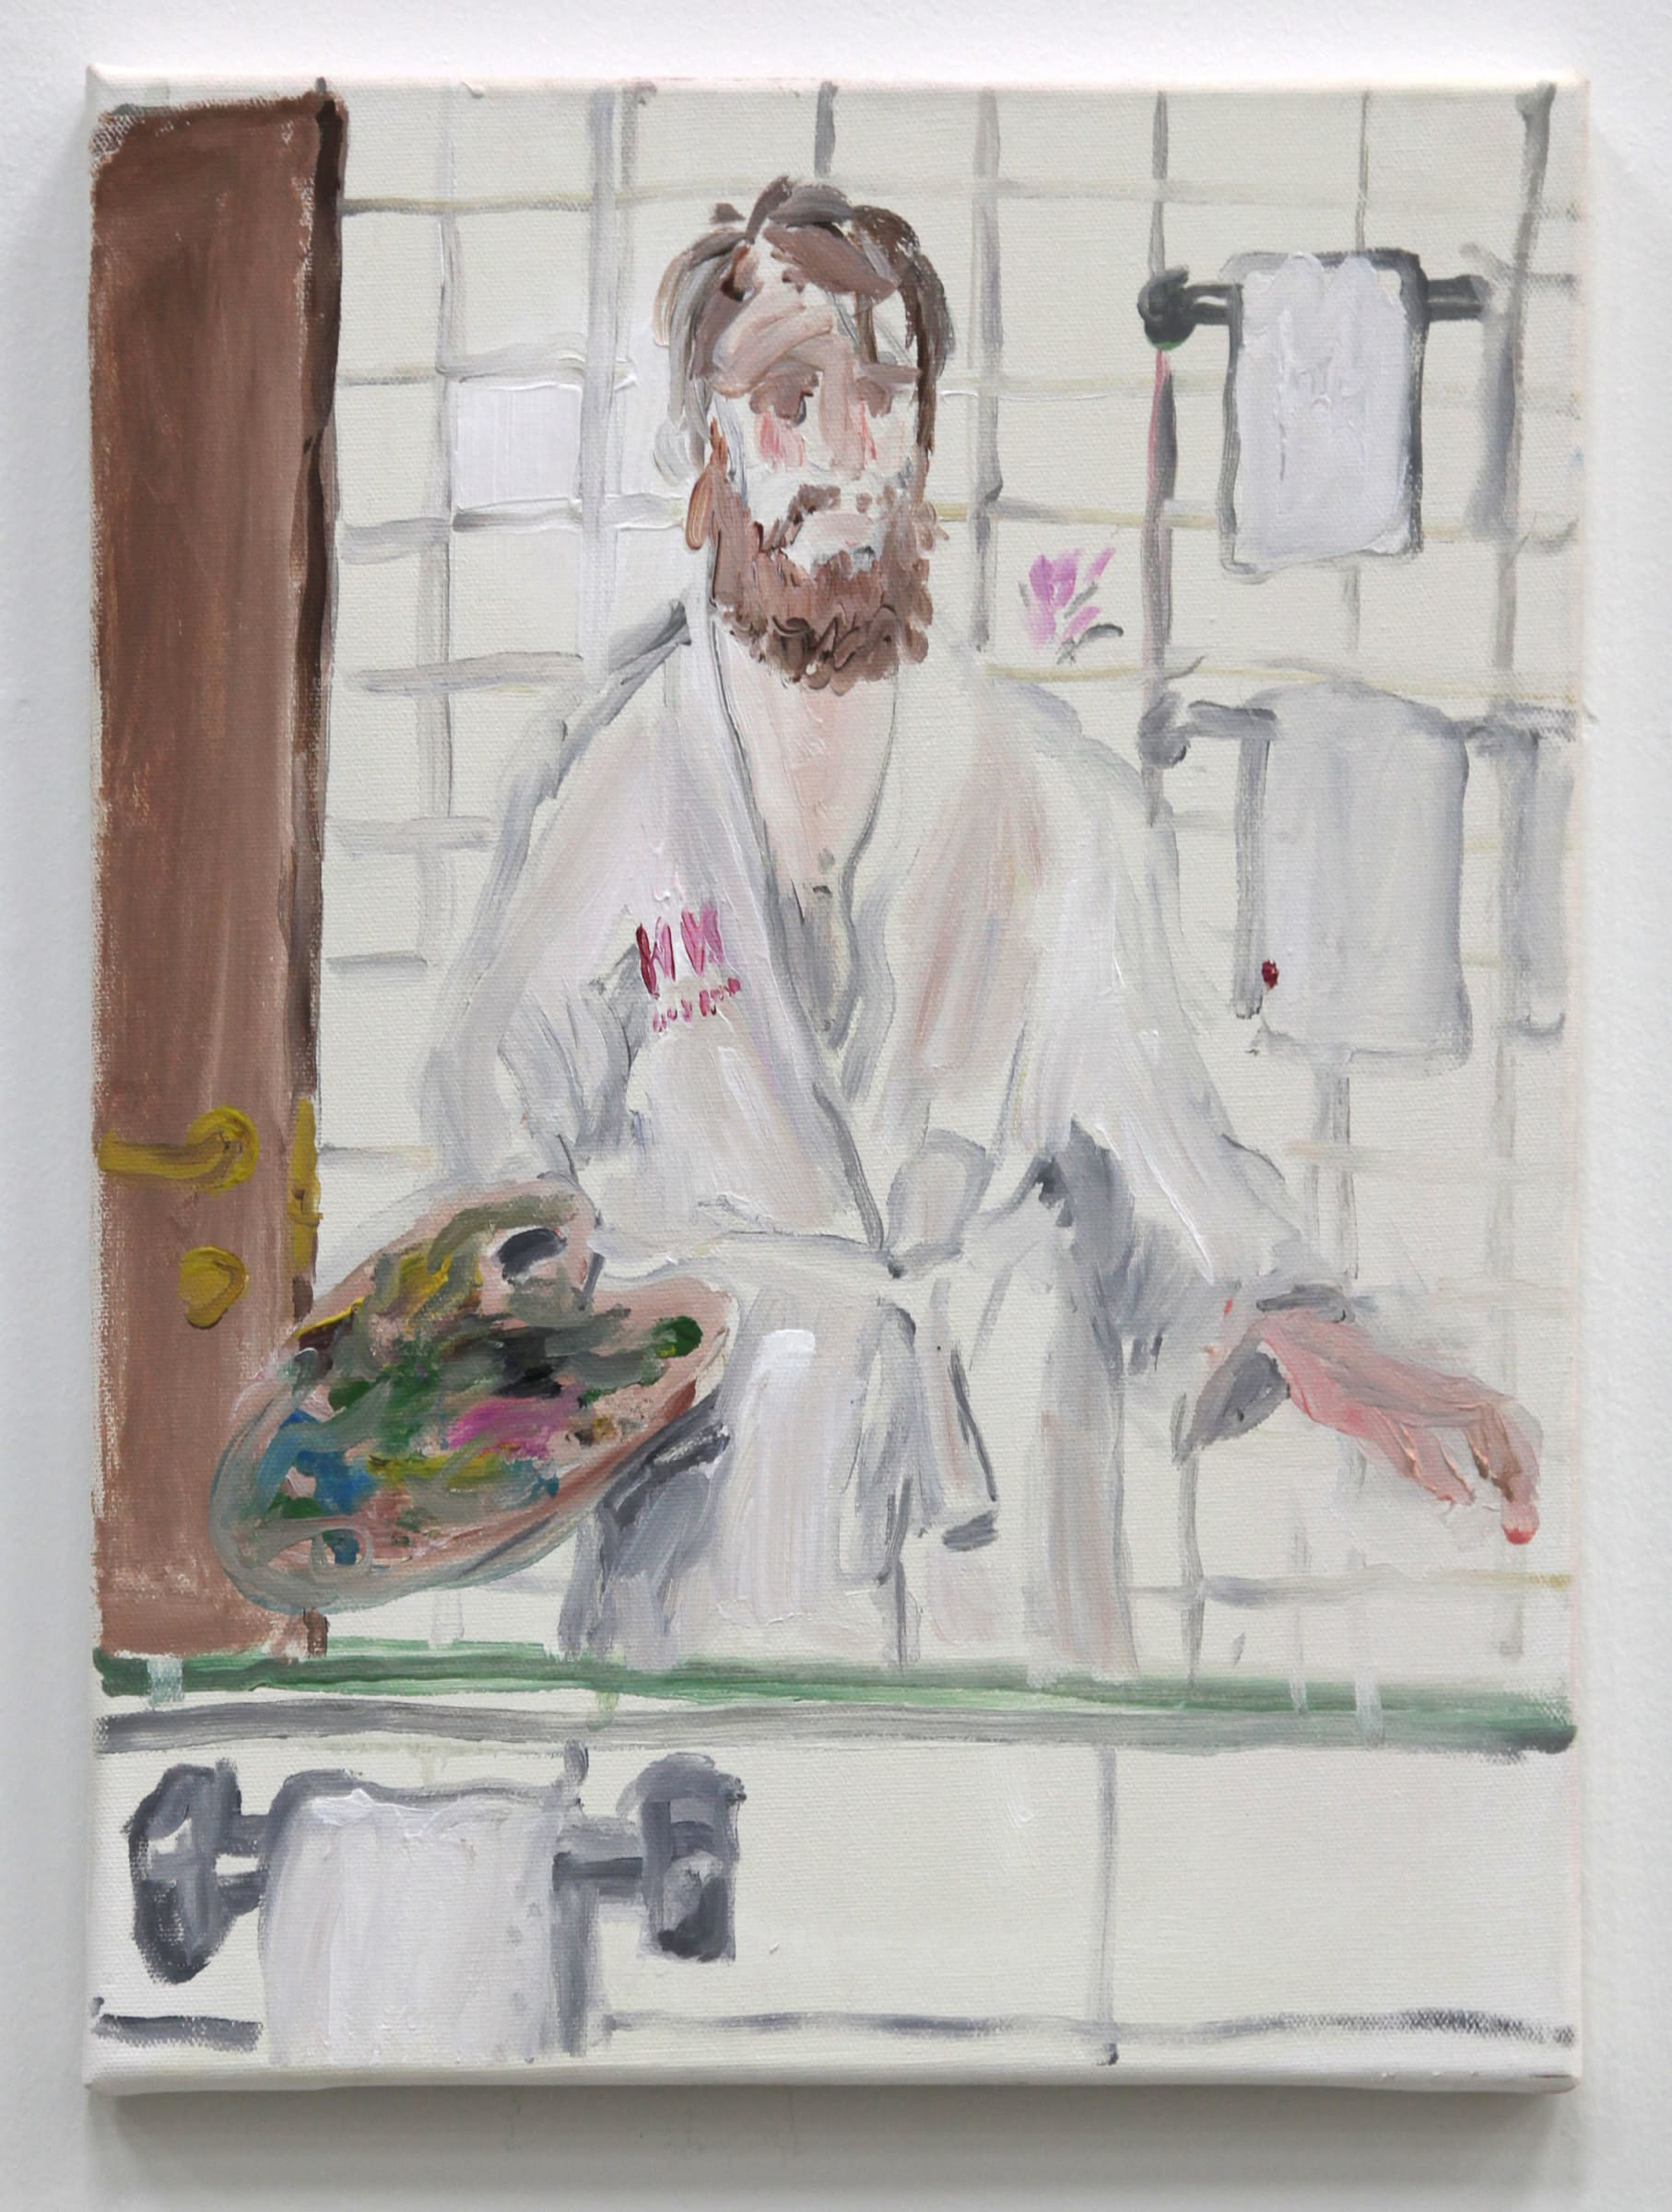 "<span class=""link fancybox-details-link""><a href=""/artists/35-ragnar-kjartansson/works/9239/"">View Detail Page</a></span><div class=""artist""><strong>RAGNAR KJARTANSSON</strong></div> <div class=""title""><em>Reflection from room 413</em>, 2013</div> <div class=""medium"">oil on canvas</div> <div class=""dimensions"">39 x 30 x 2 cm</div>"